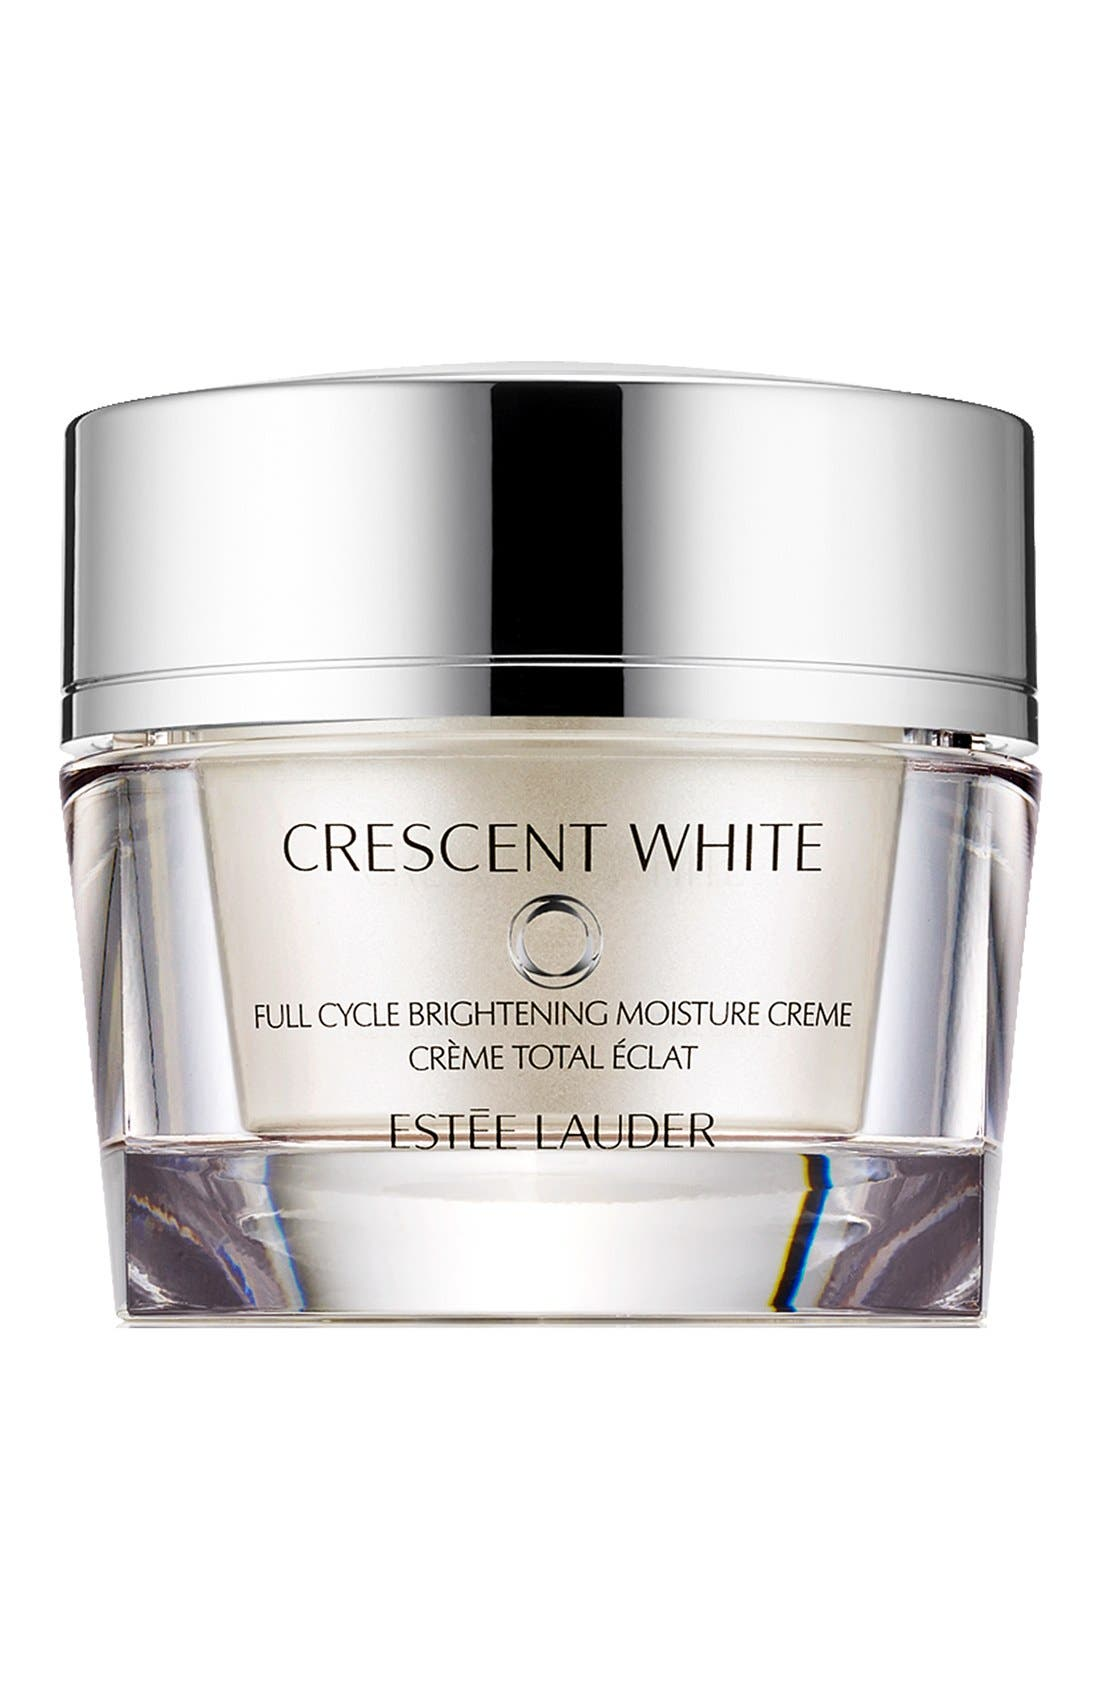 Crescent White Full Cycle Brightening Moisture Créme,                             Main thumbnail 1, color,                             000